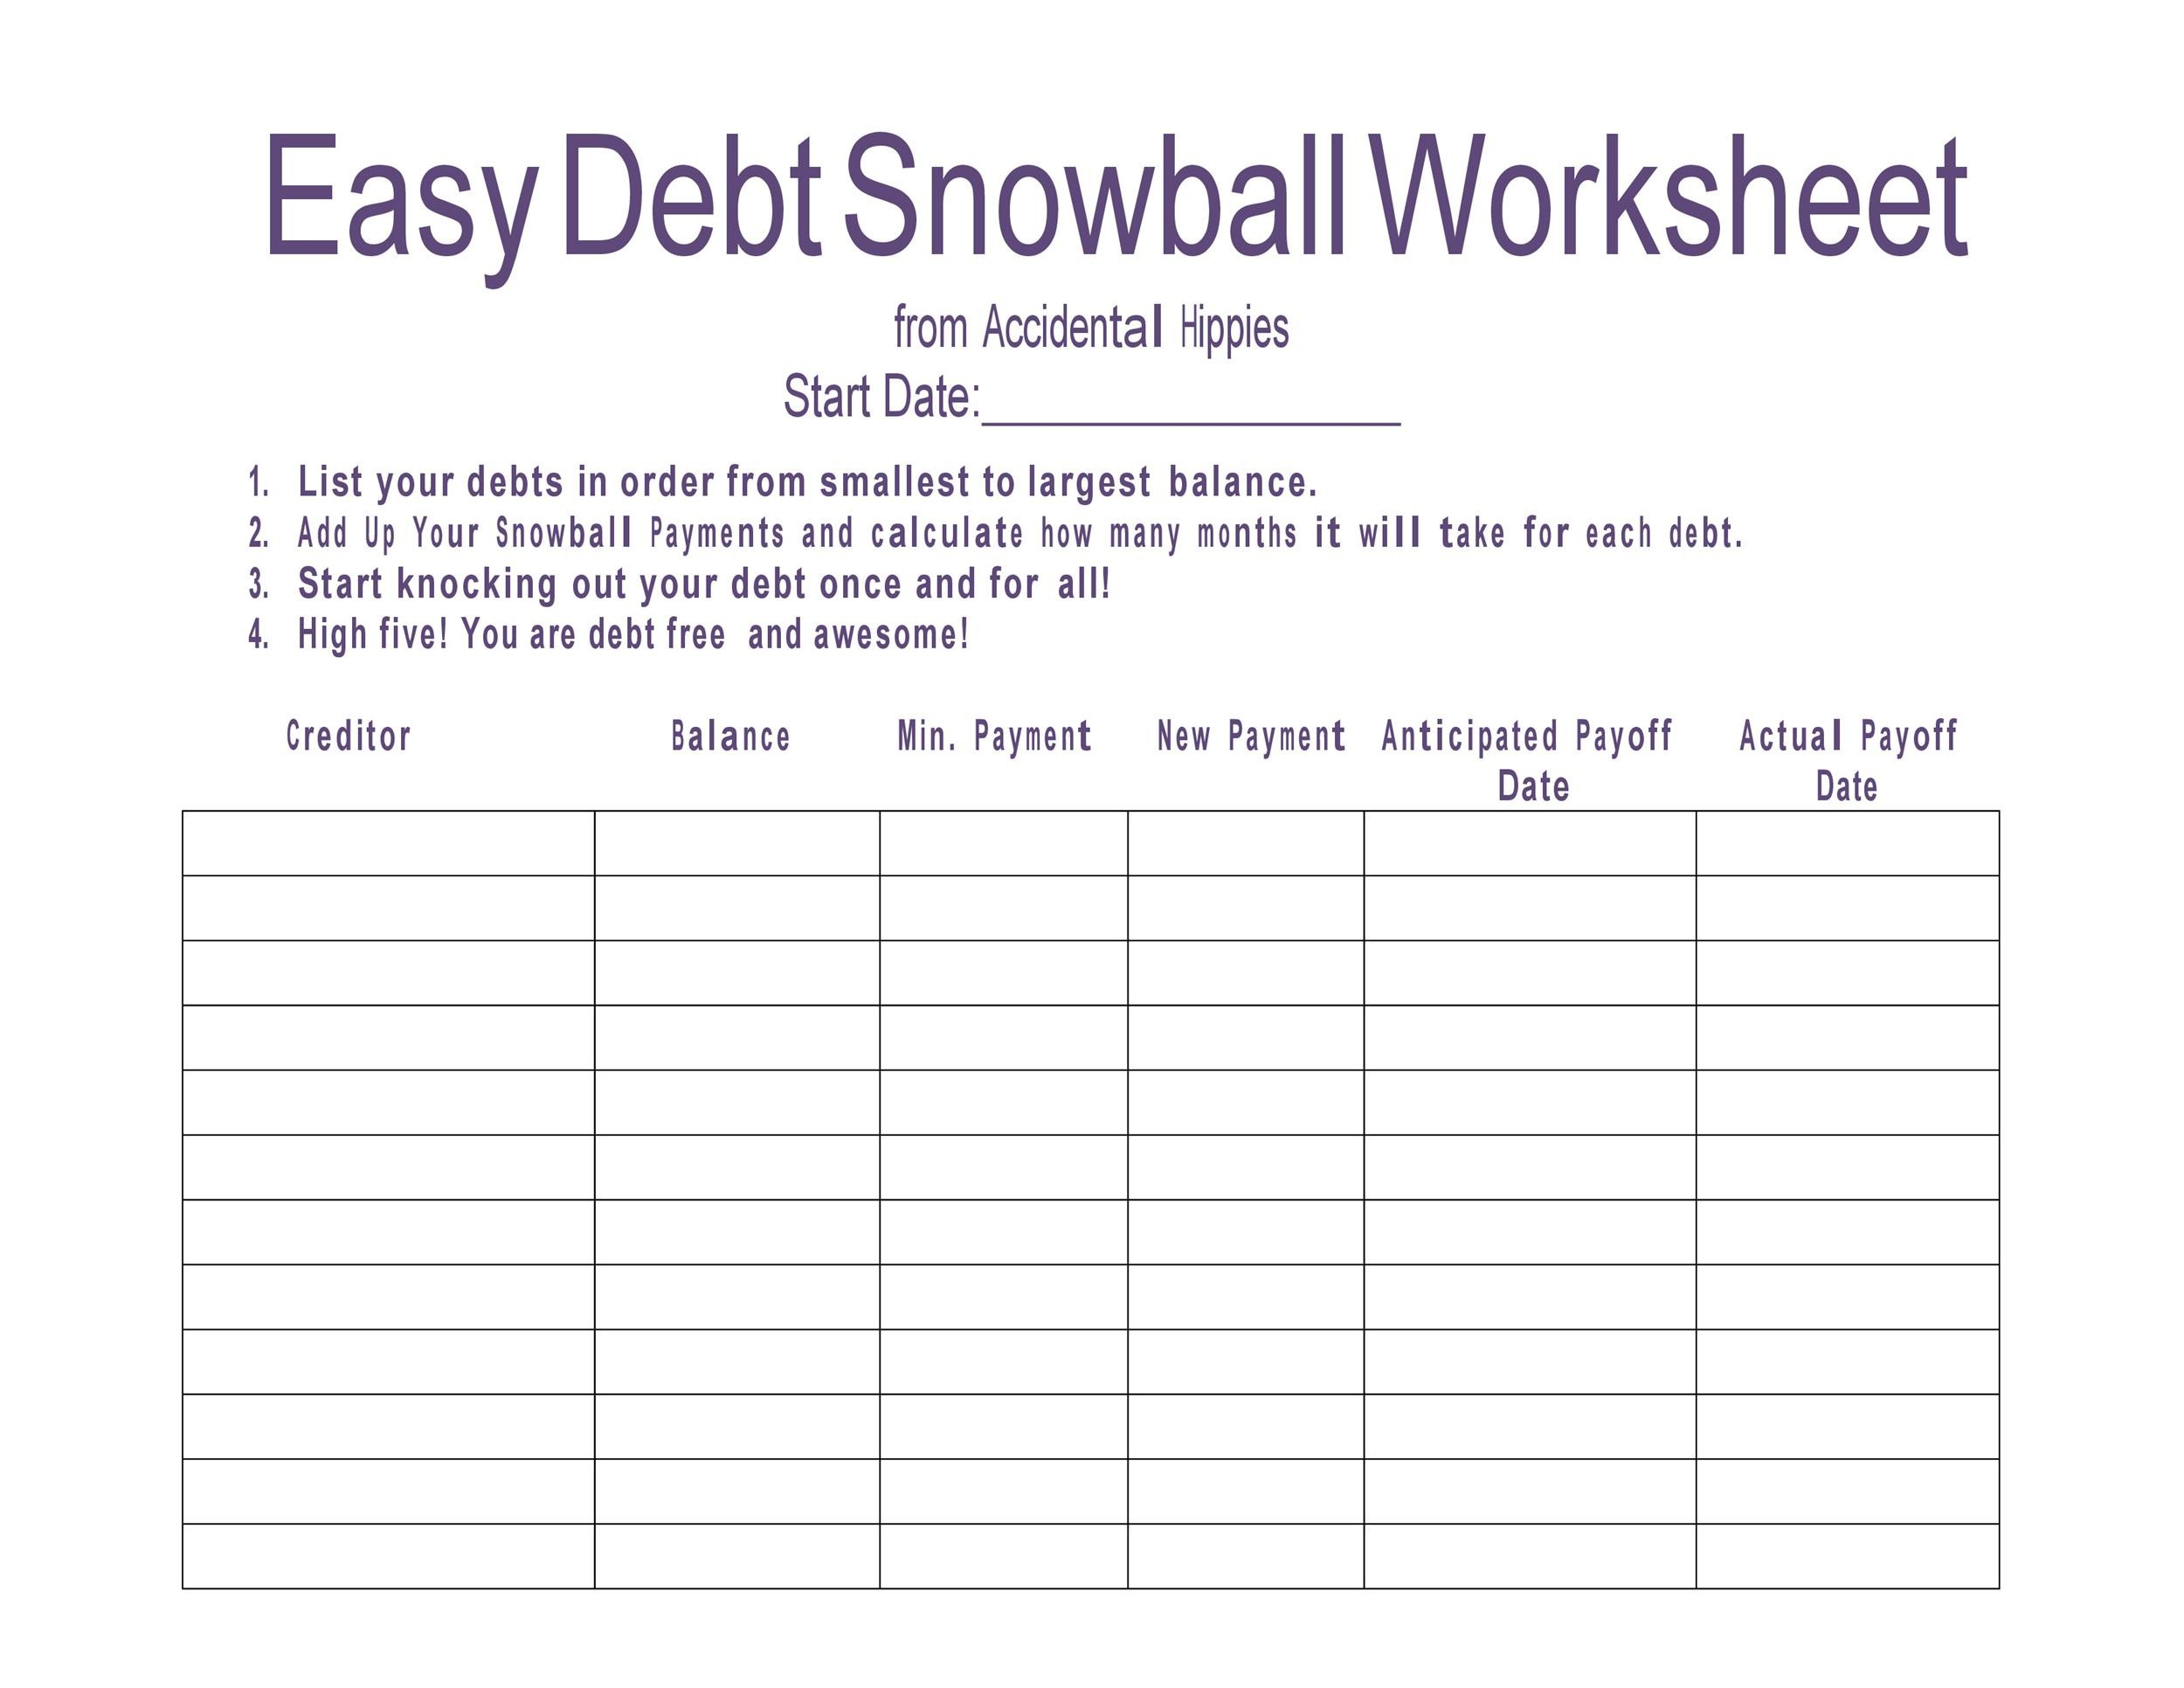 38 Debt Snowball Spreadsheets, Forms & Calculators ❄❄❄